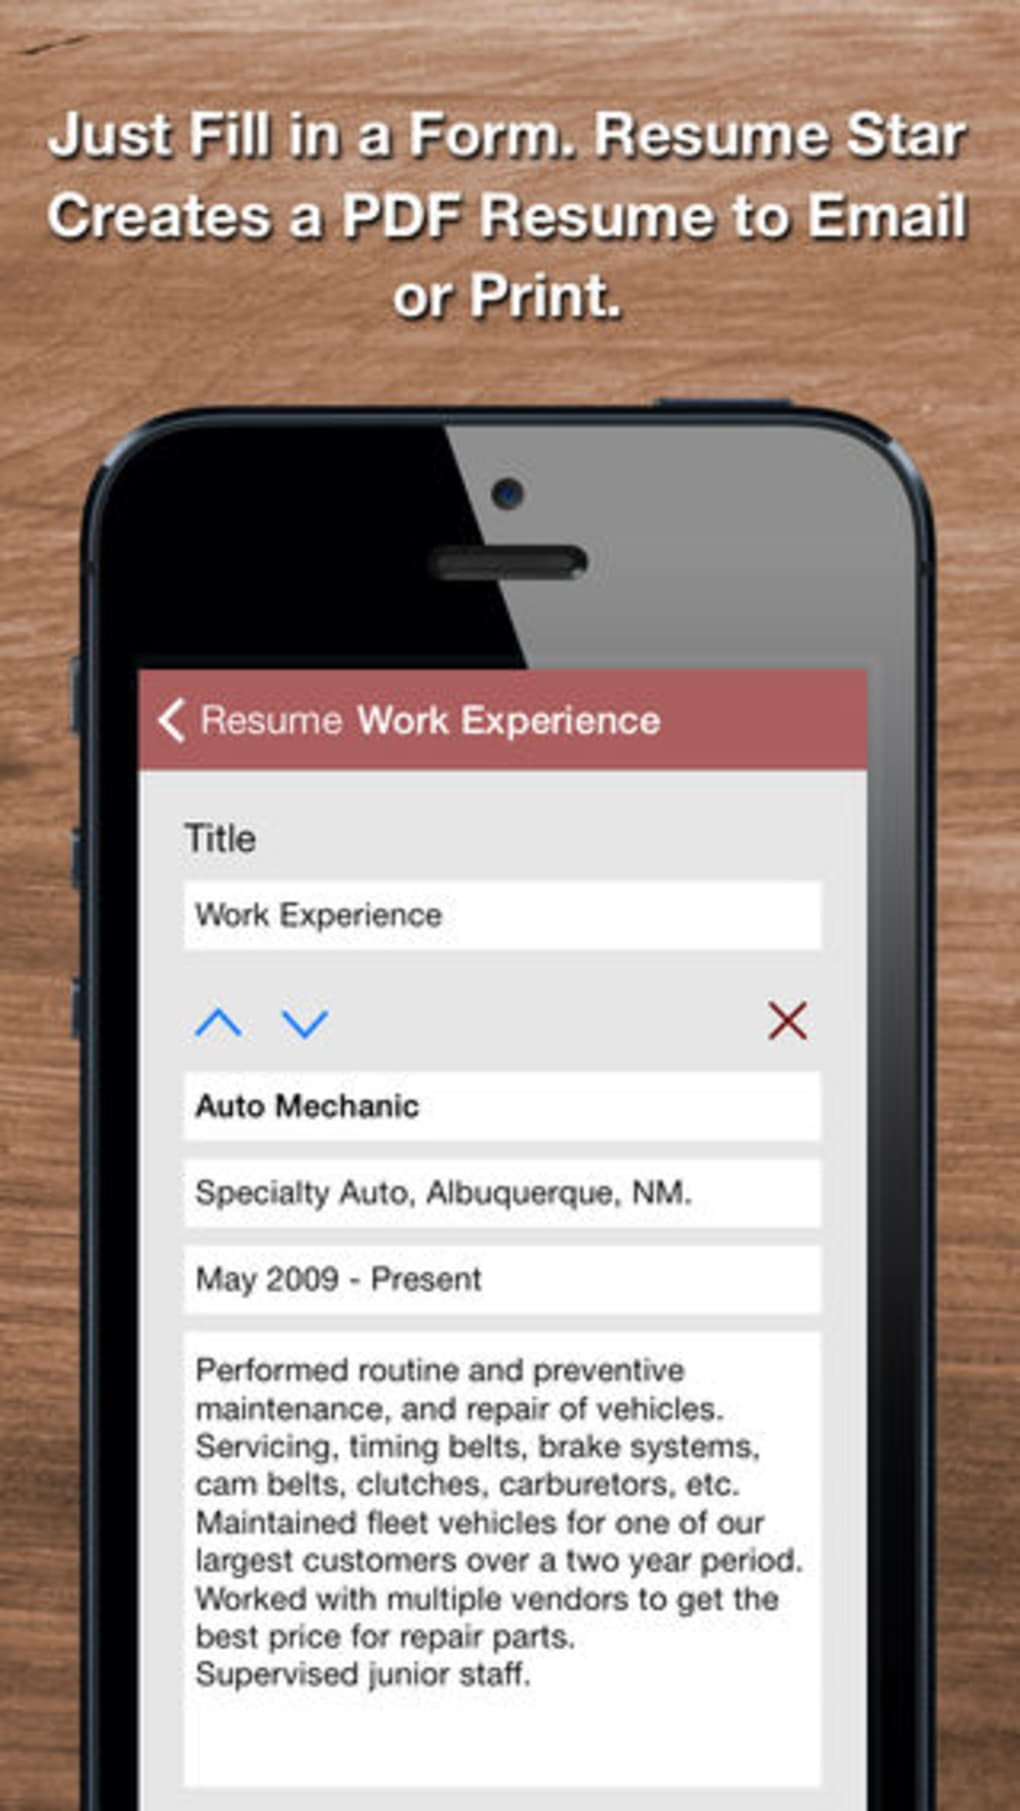 Resume Star for iPhone - Download